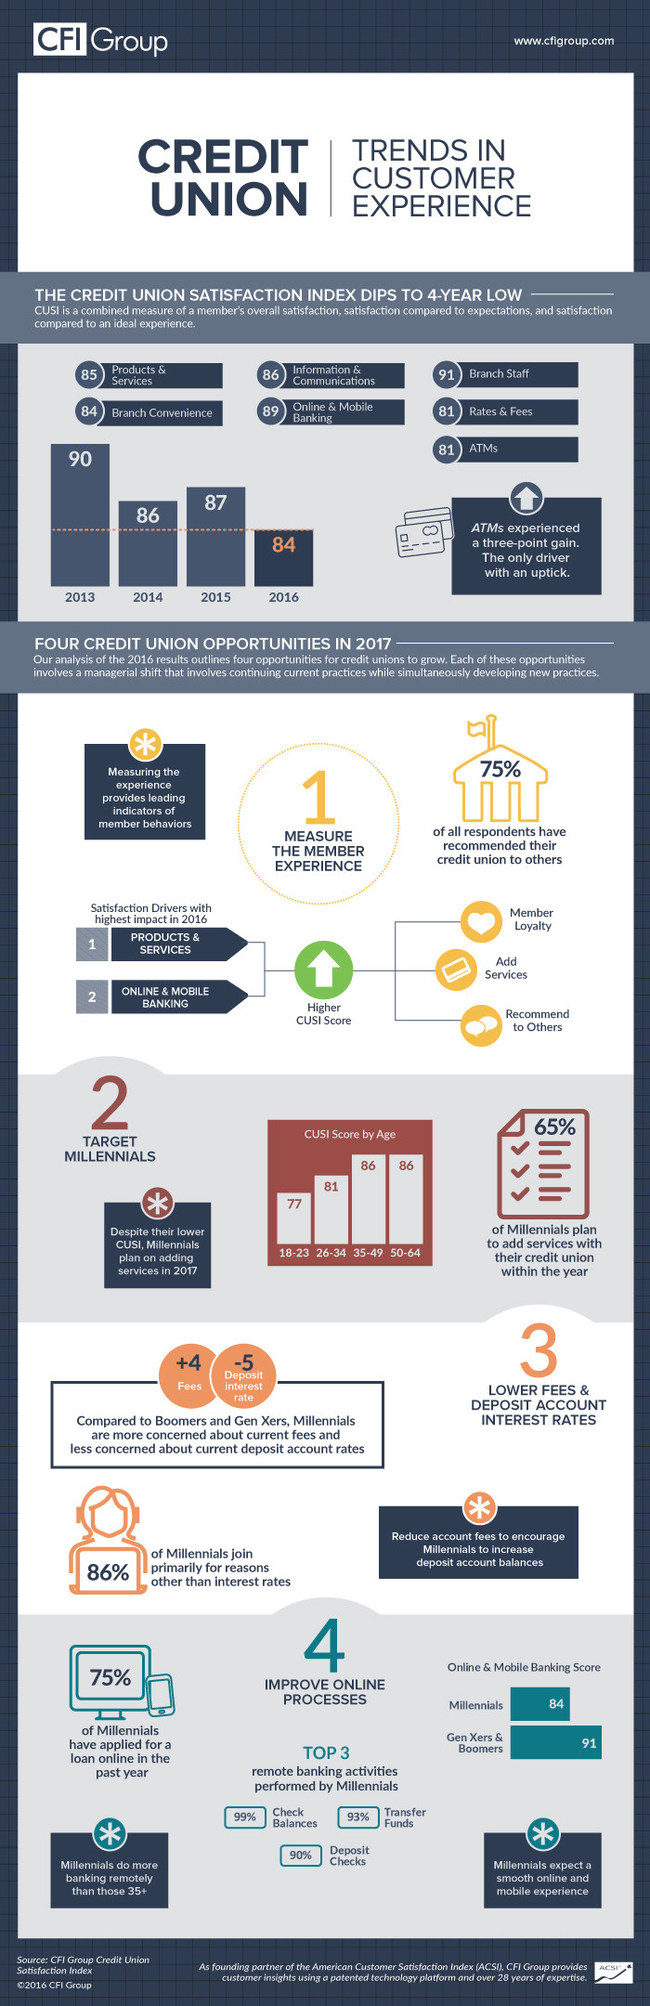 Credit Union Satisfaction Index 2016 infographic